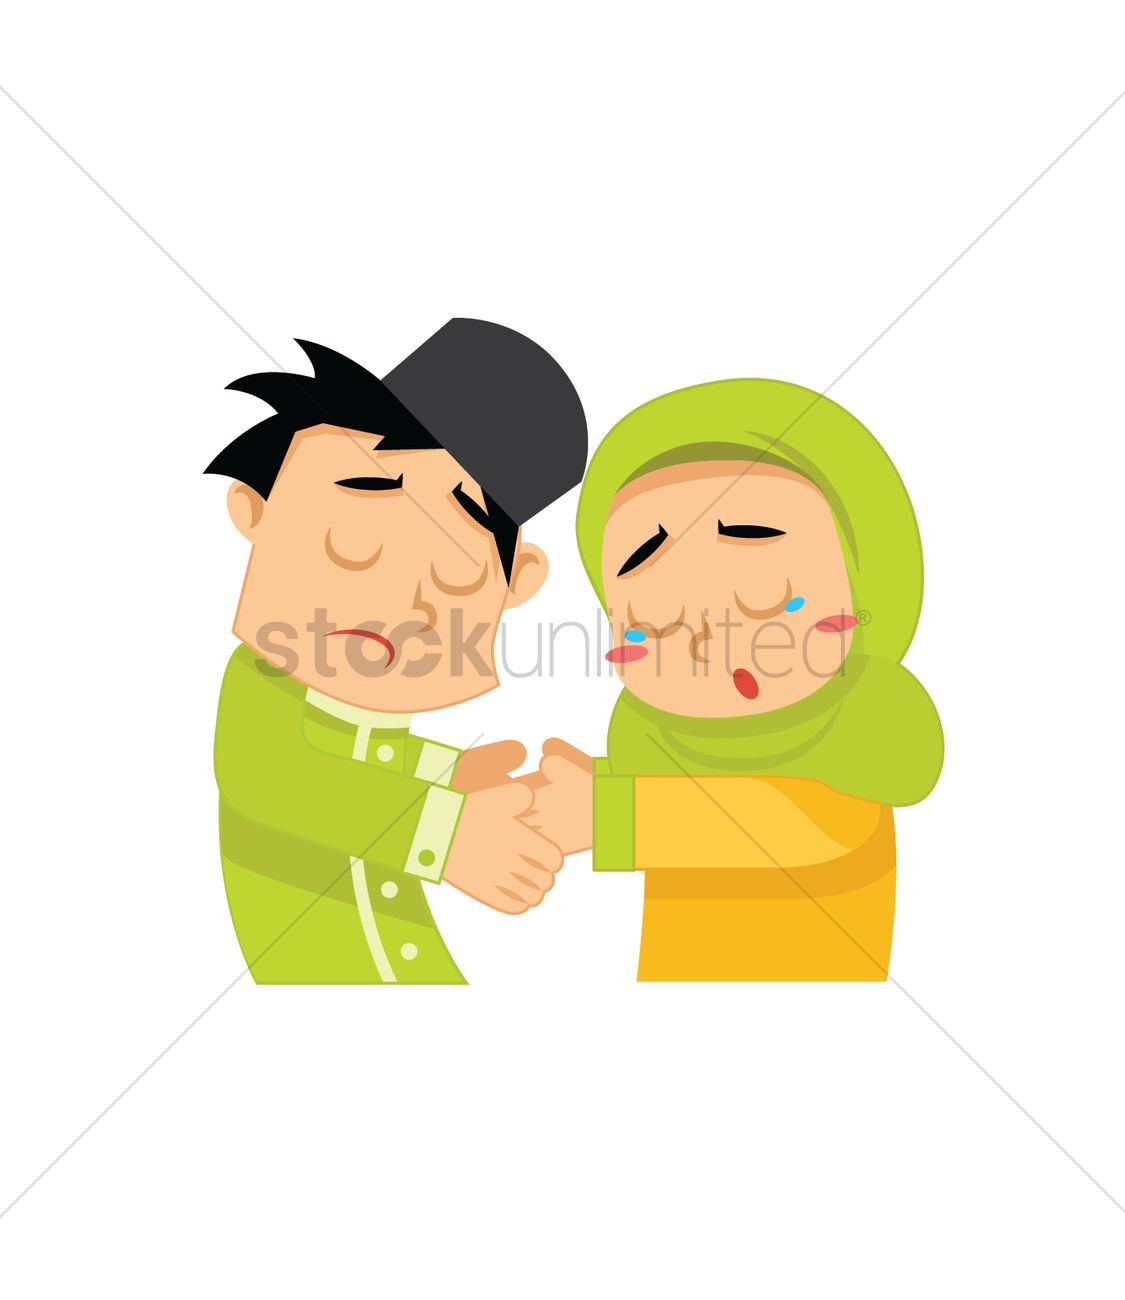 Muslim boy and girl shaking hands Vector Image - 2018944